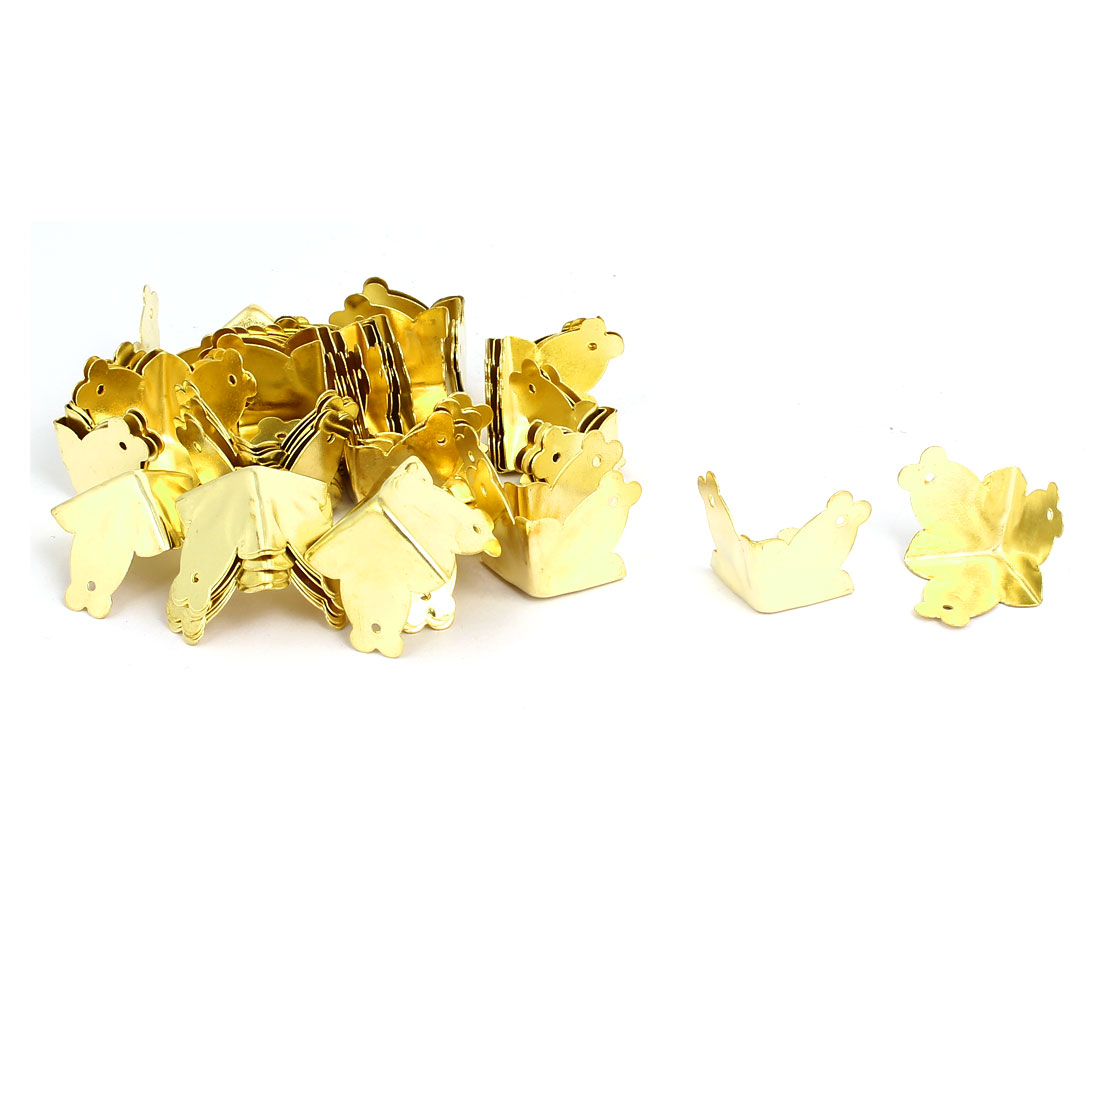 Jewelry Wine Gift Box 3 Holes Fixed Three Sides Corner Protectors Gold Tone 50pcs